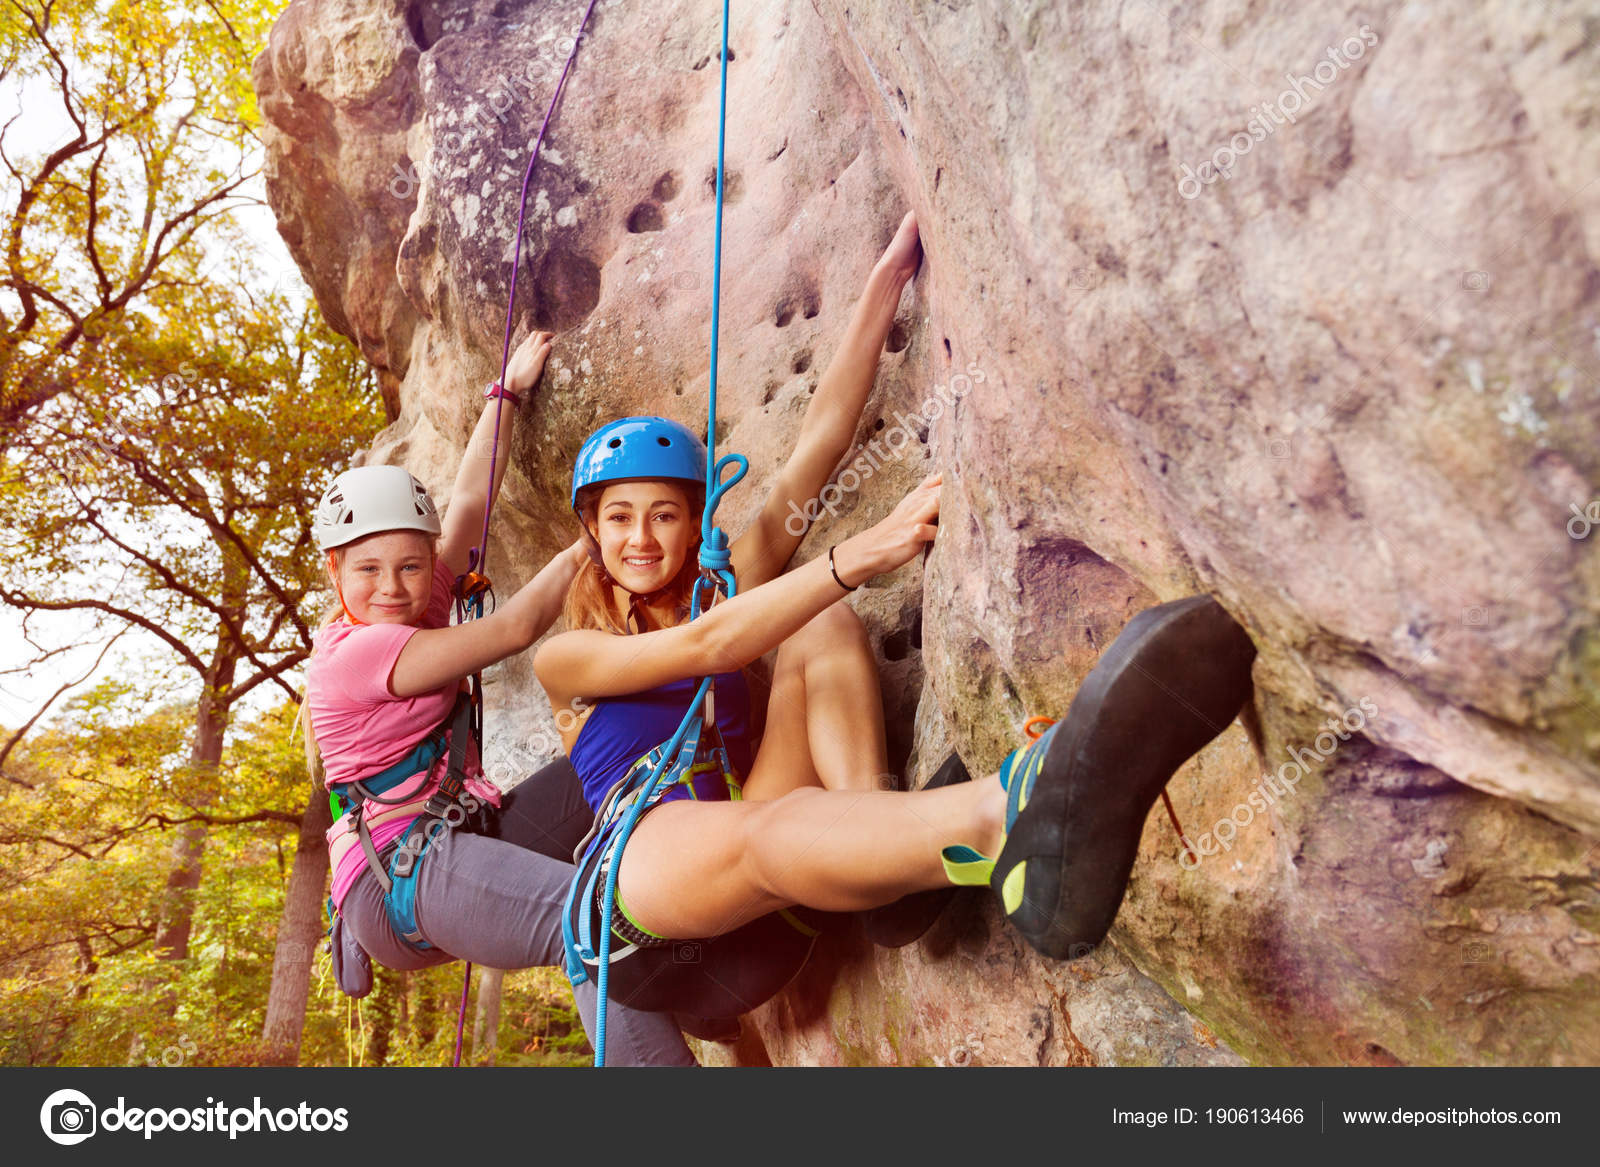 Female Rock Climbers Climbing Gear Attached Harnesses — Stock Photo ... dab6b19bf2